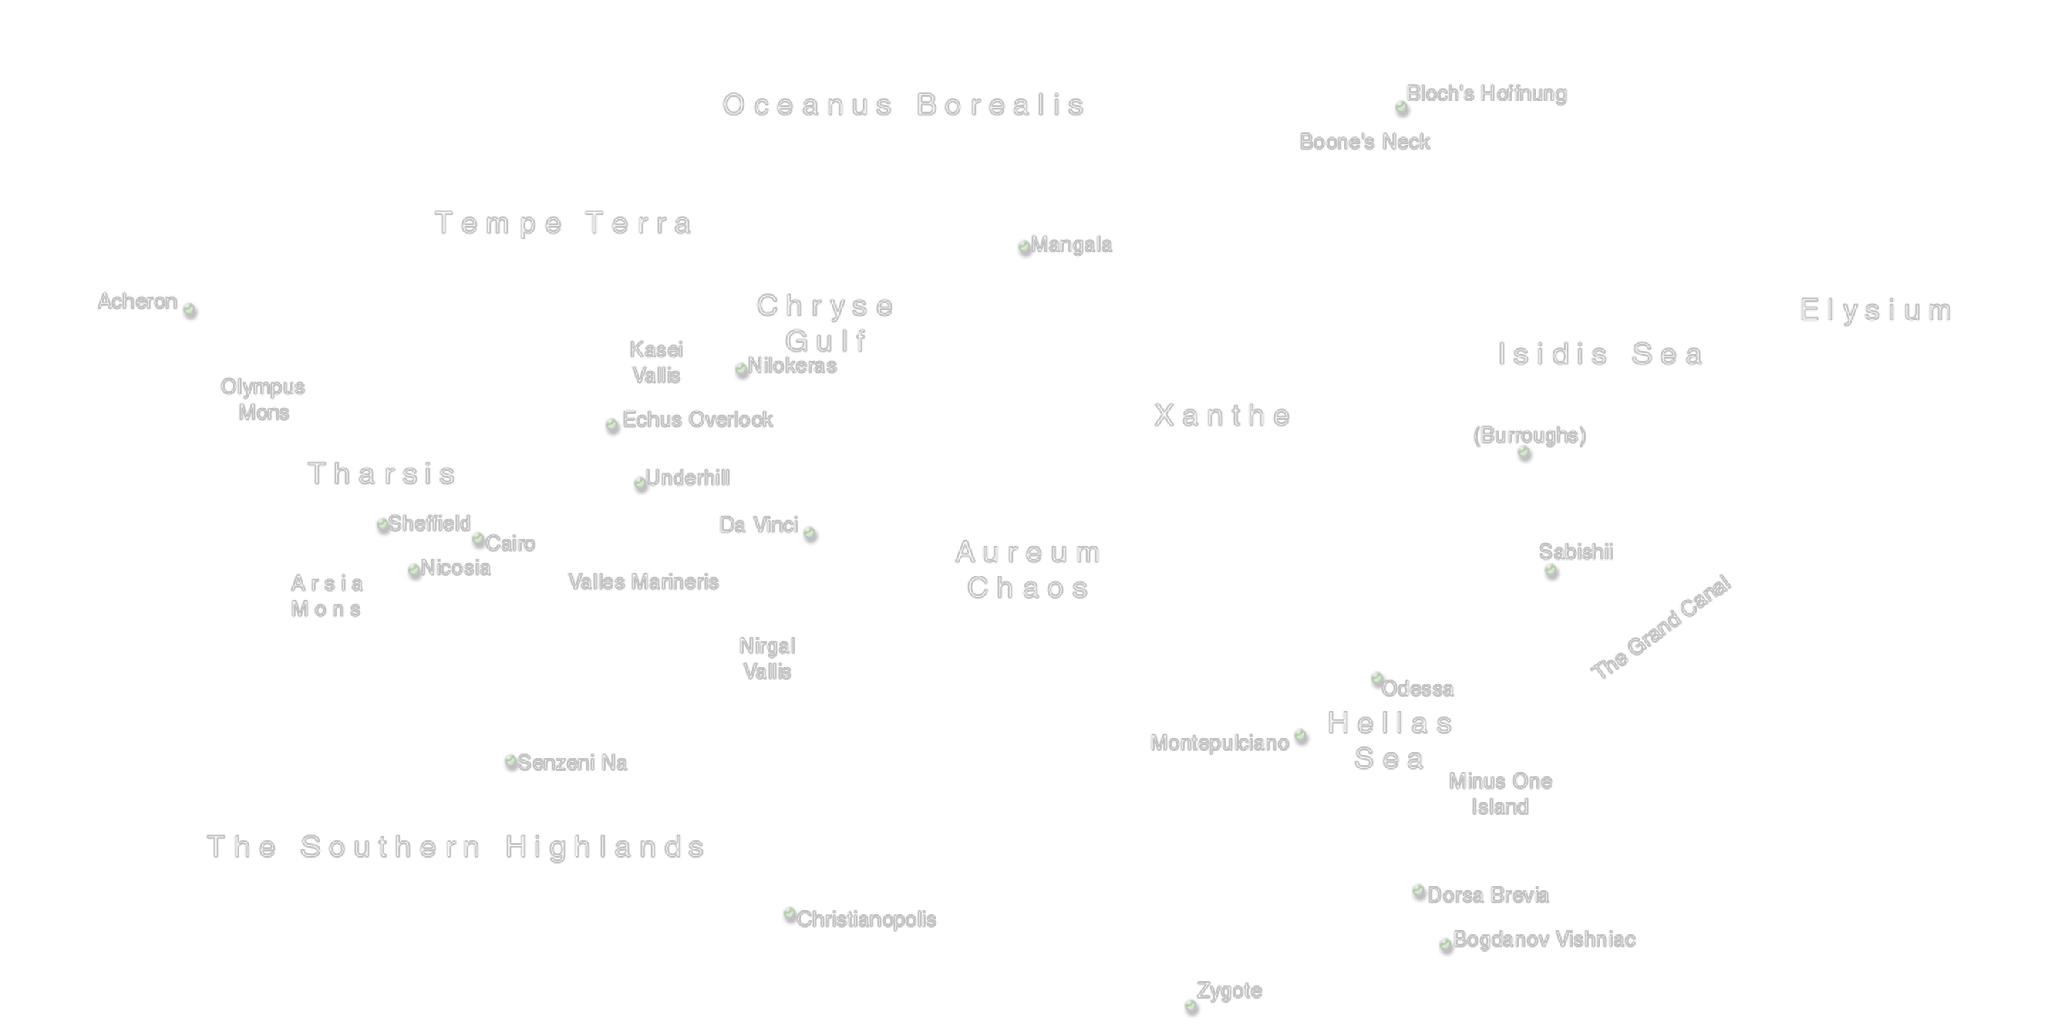 2Kx1K PNG Texture map of RGB Mars' place names ...